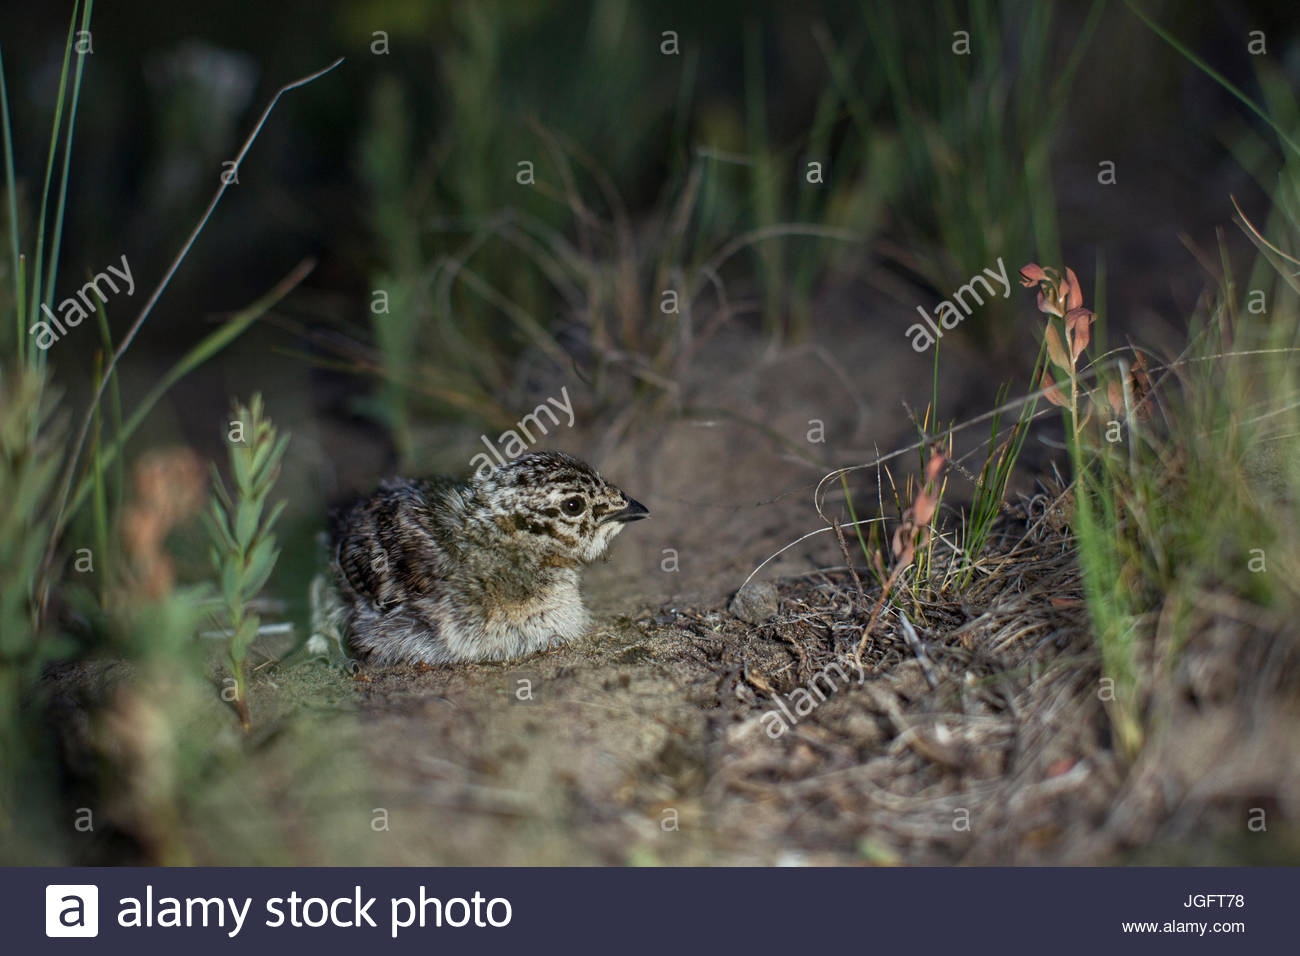 A greater sage grouse, Centrocercus urophasianus. - Stock Image